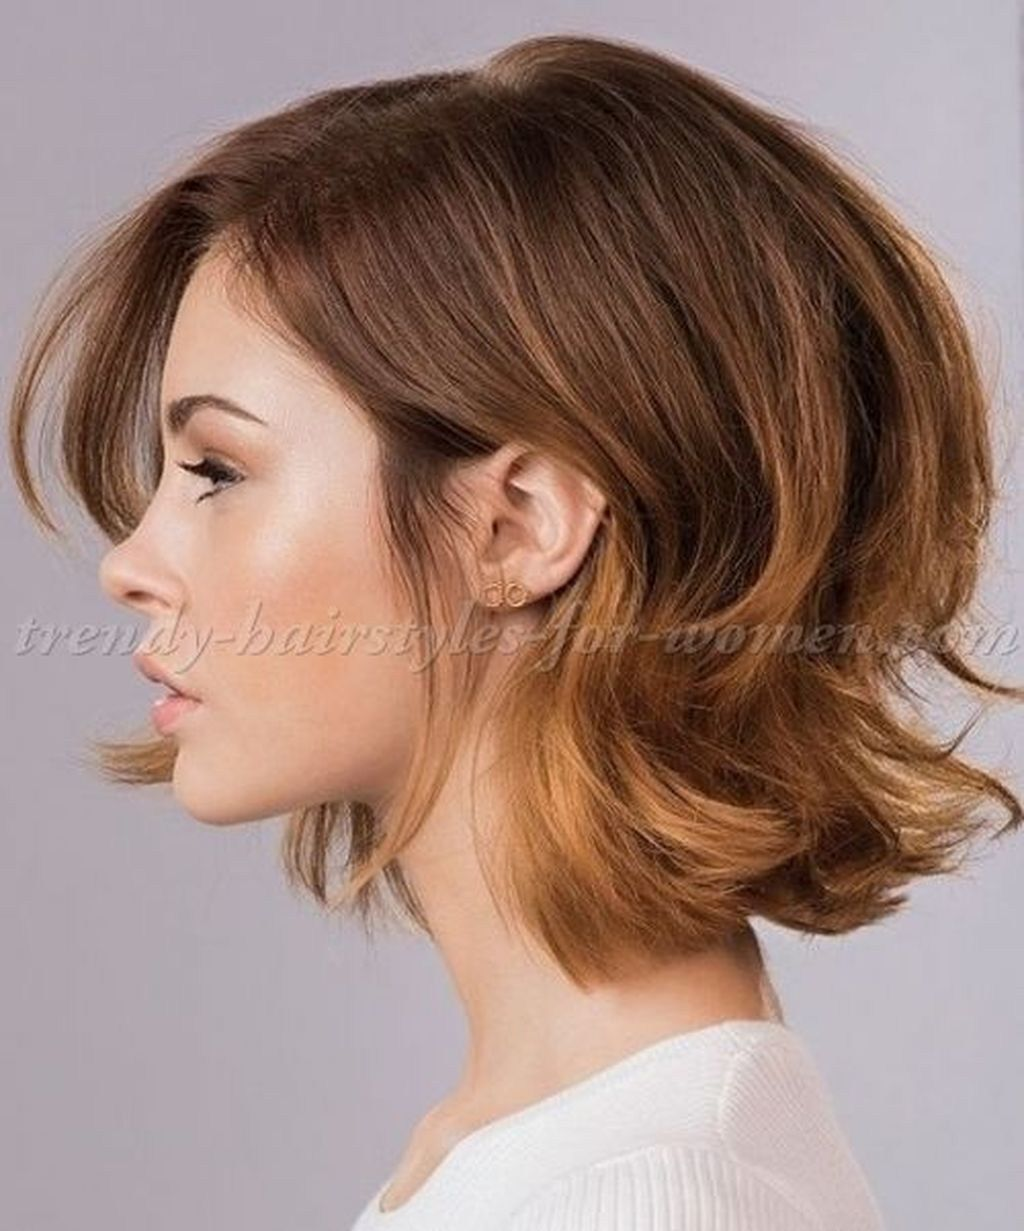 Stunning Short Brown Hairstyle Ideas For Women10 Womens Hairstyles Hair Styles Medium Hair Styles